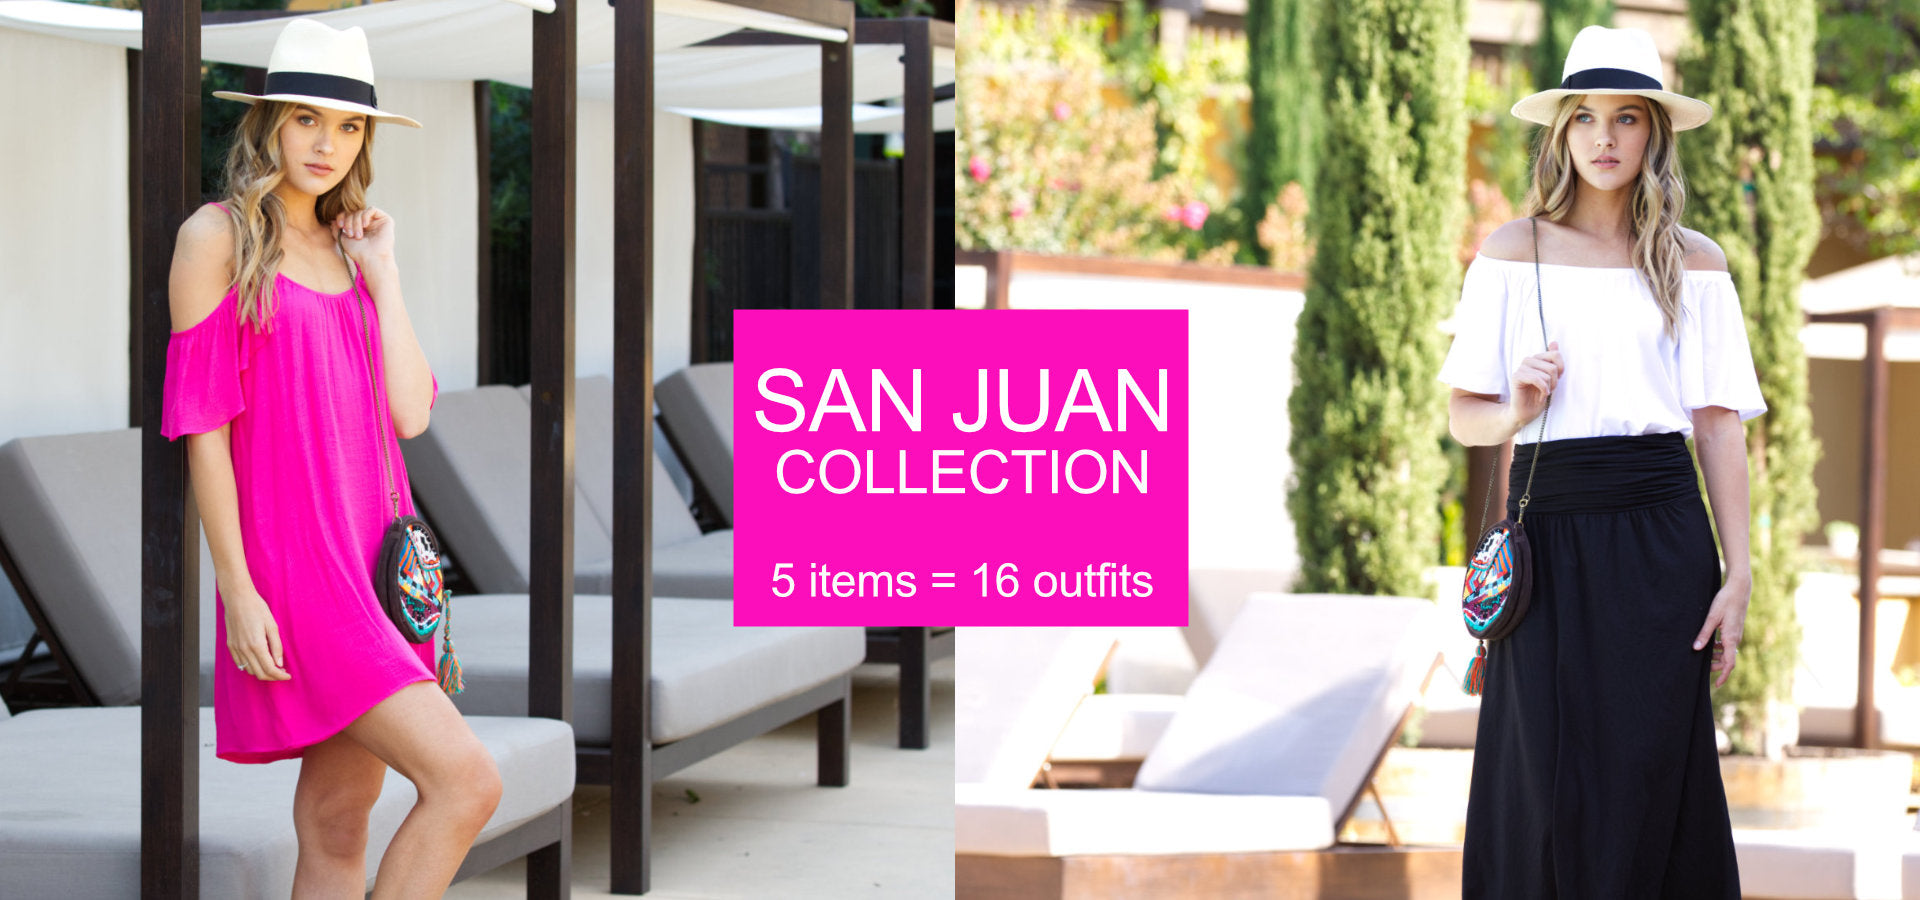 San Juan Collection